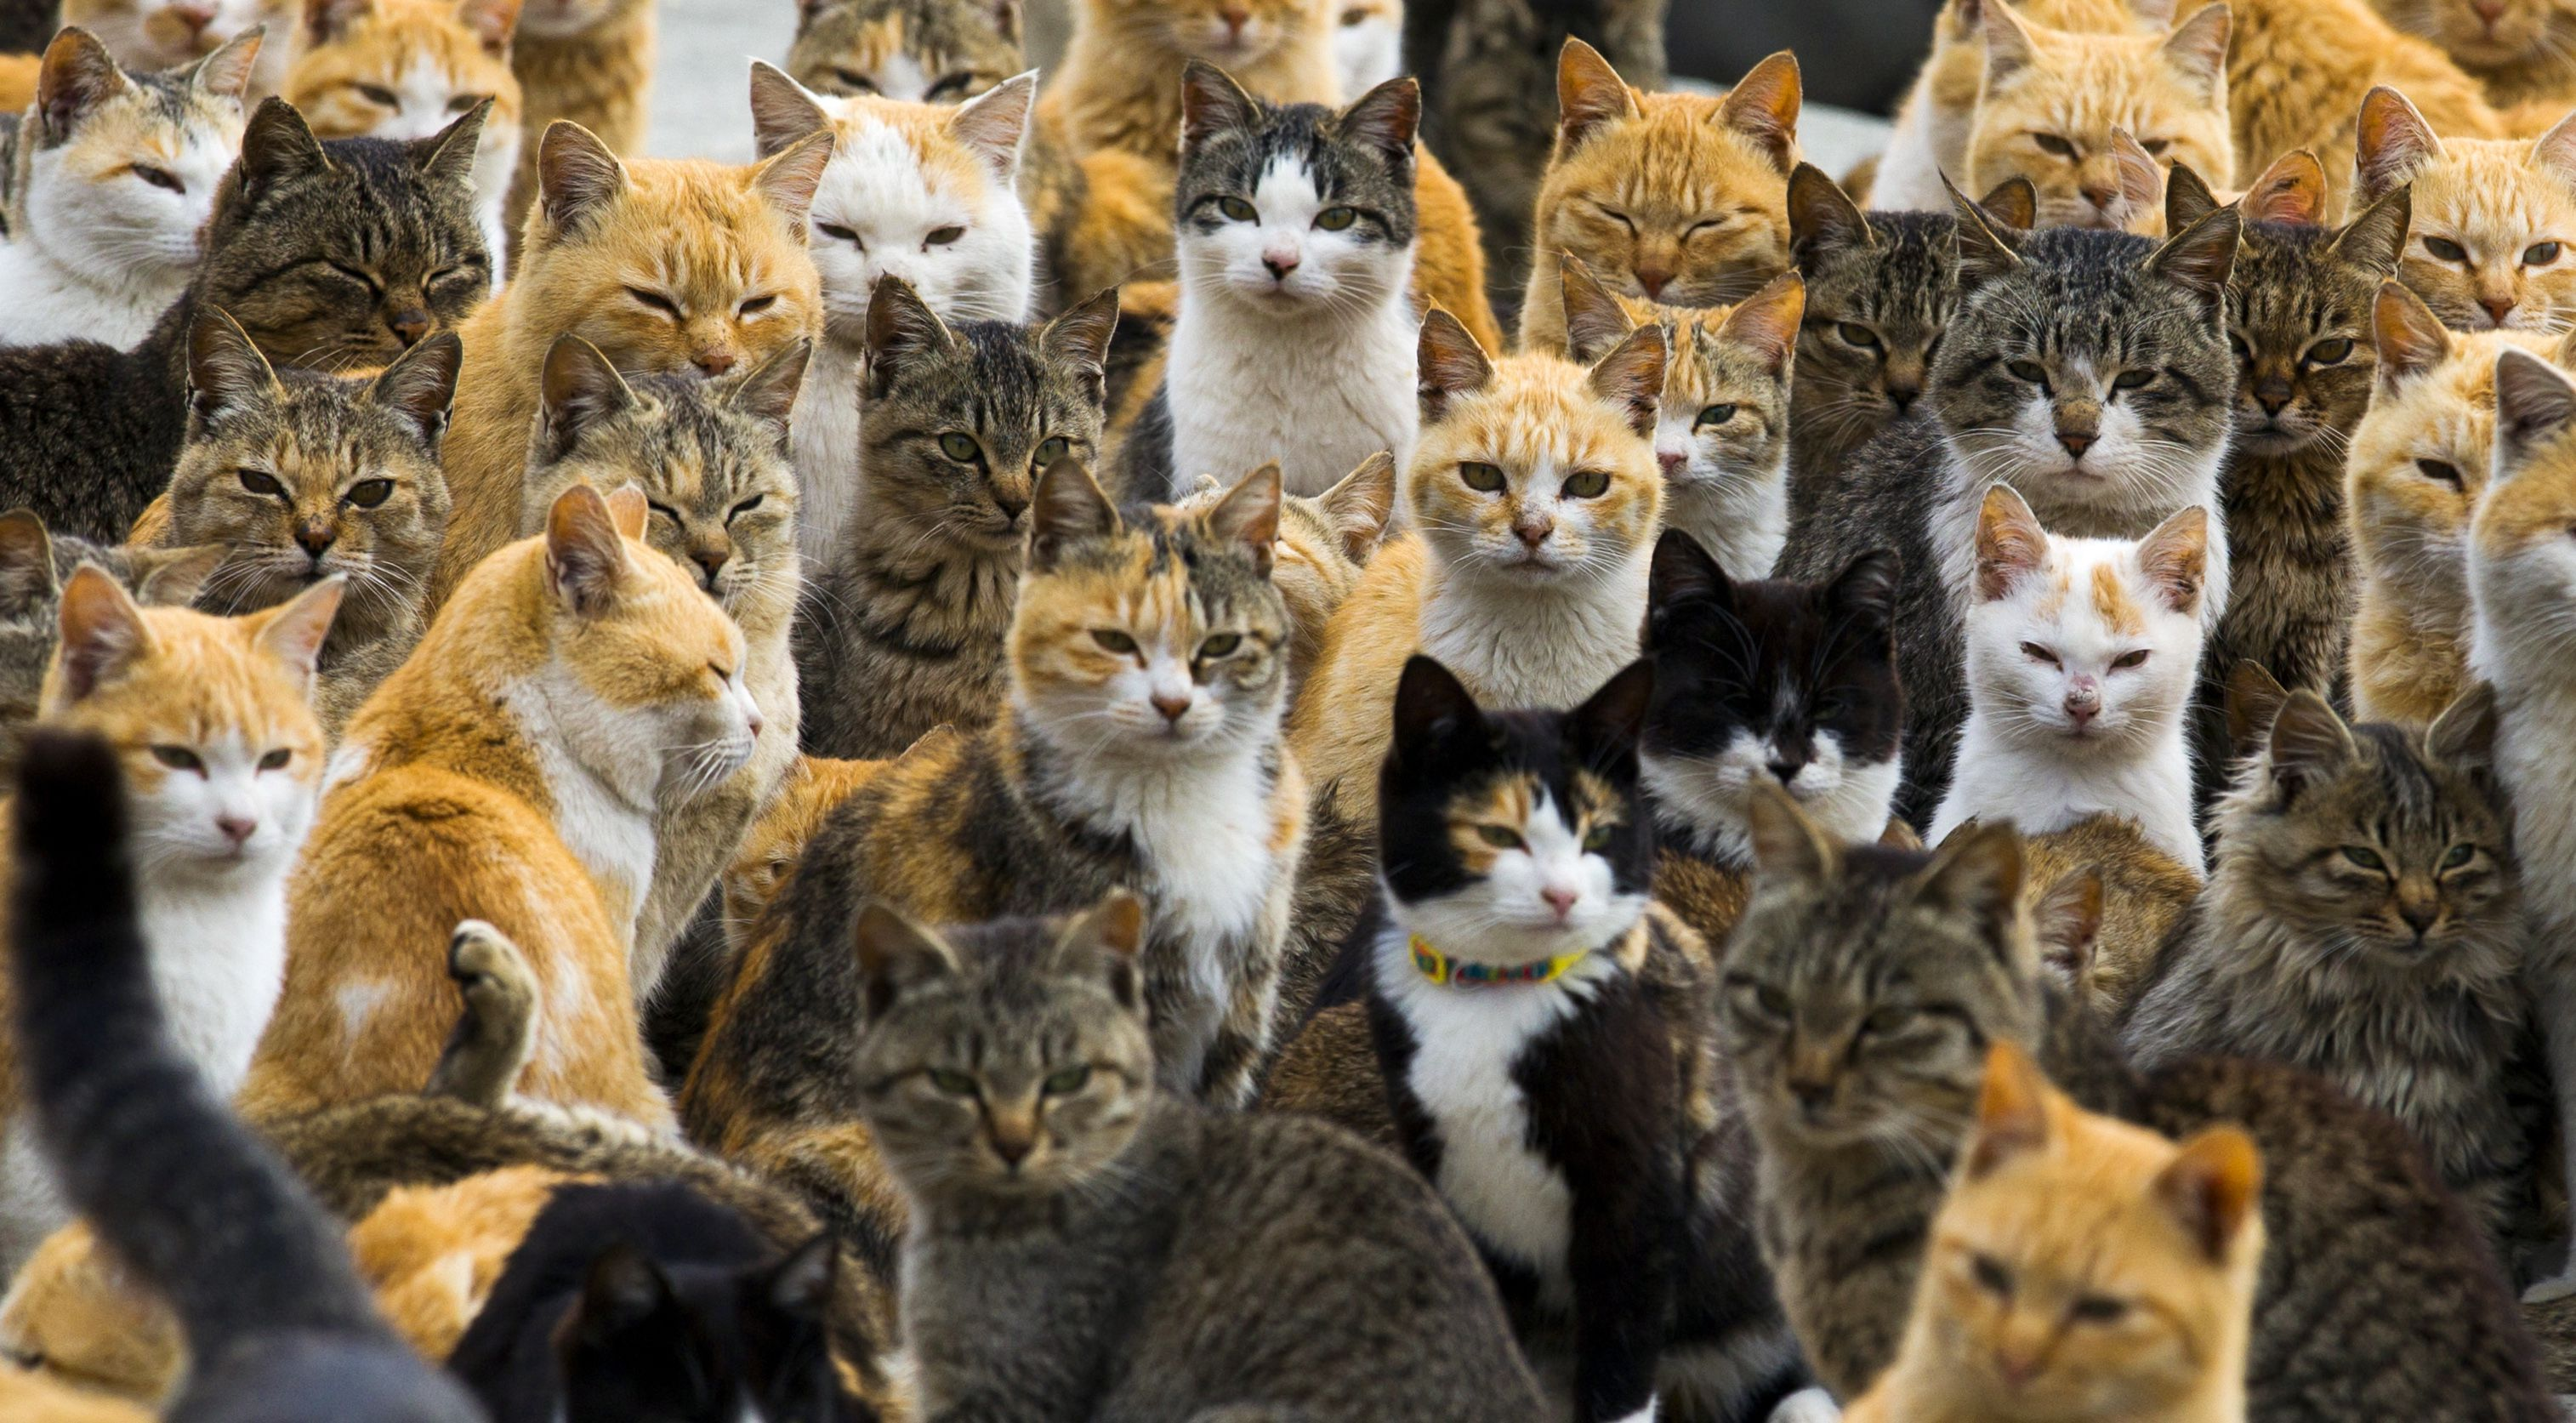 Cats crowd the harbour on Aoshima Island in the Ehime prefecture in southern Japan February 25, 2015. An army of cats rules the remote island in southern Japan, curling up in abandoned houses or strutting about in a fishing village that is overrun with felines outnumbering humans six to one. Picture taken February 25, 2015. To match story JAPAN-CATS/ REUTERS/Thomas Peter